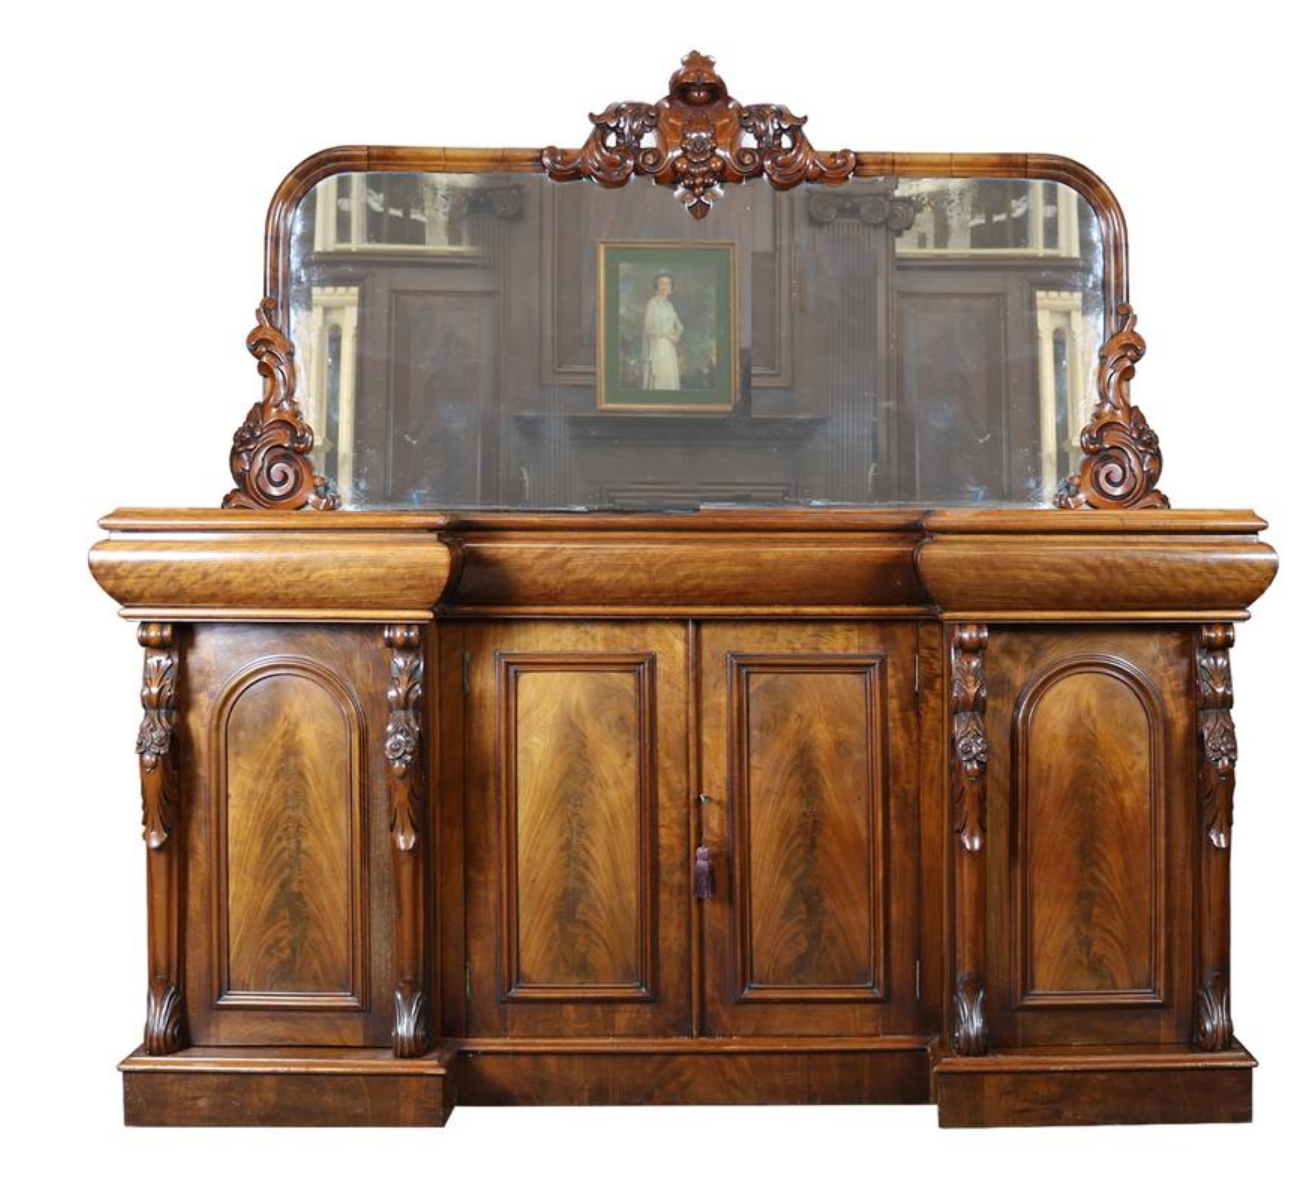 Zoom; Antique Mahogany Sideboard and Mirror-the-architectural-forum-Screen  Shot - Antique Furniture Forum Antique Furniture